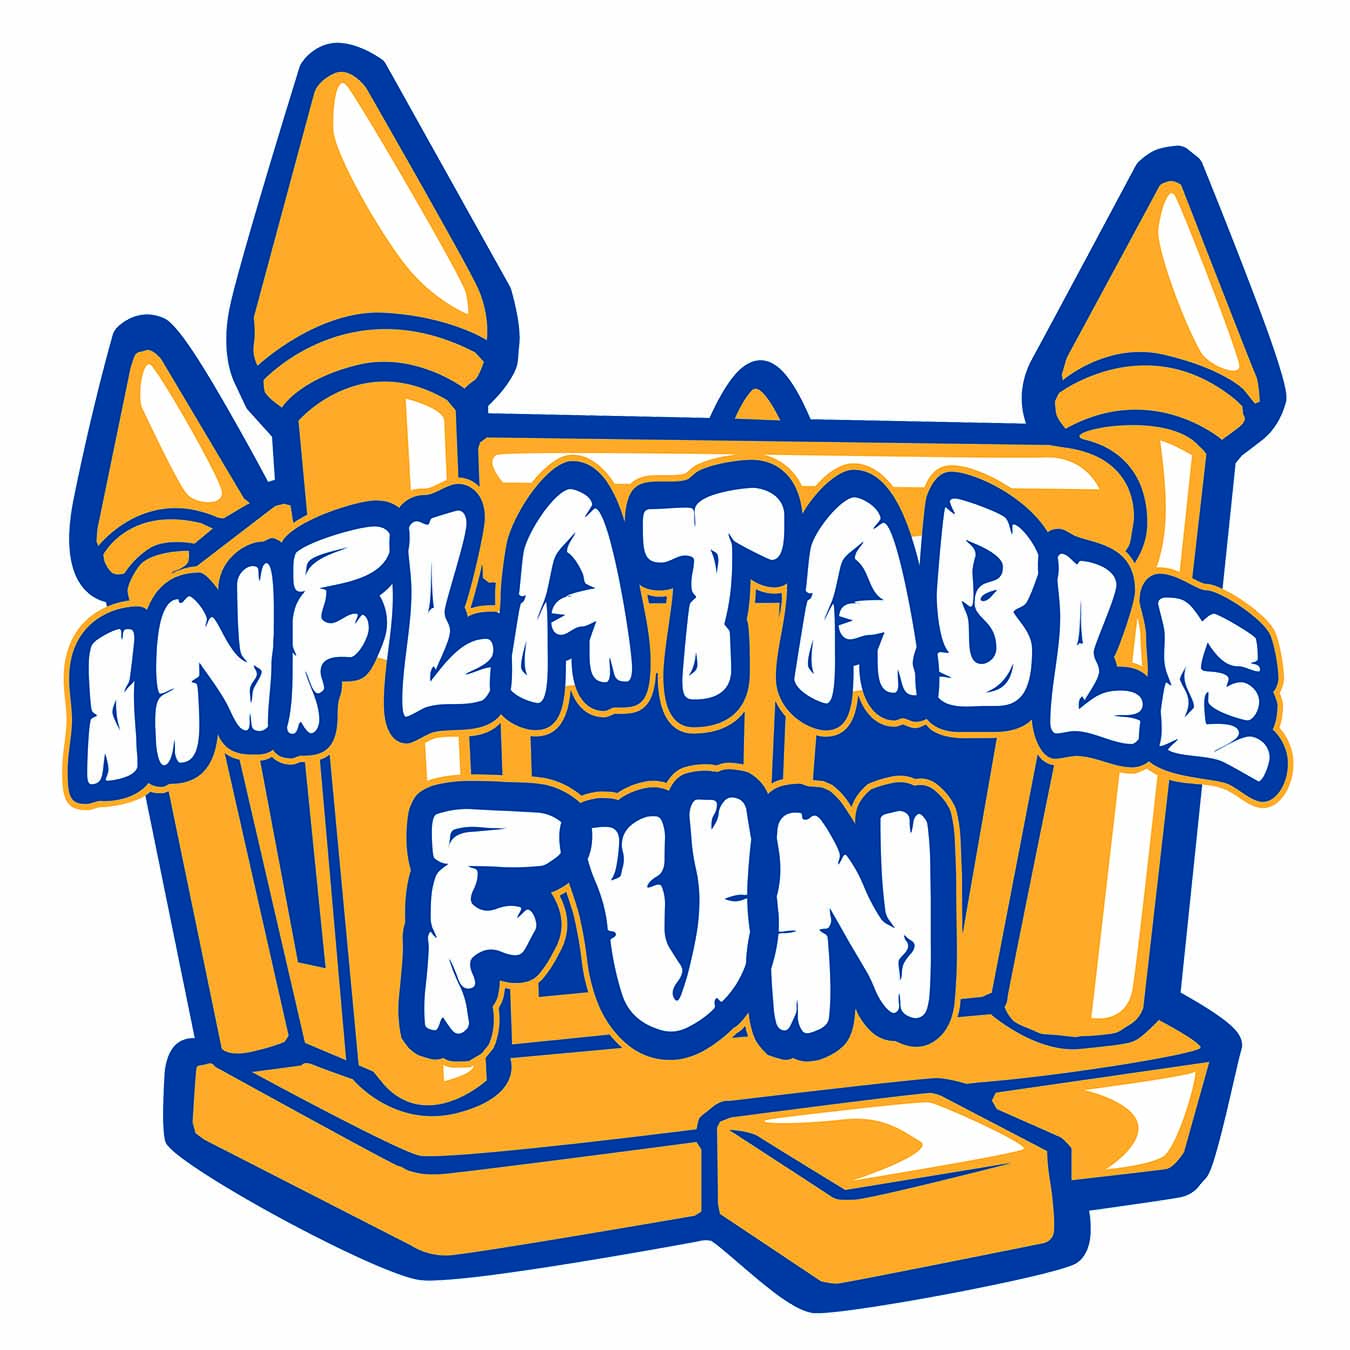 Inflatable Fun at The HUB Recreation Center in Marion Illinois